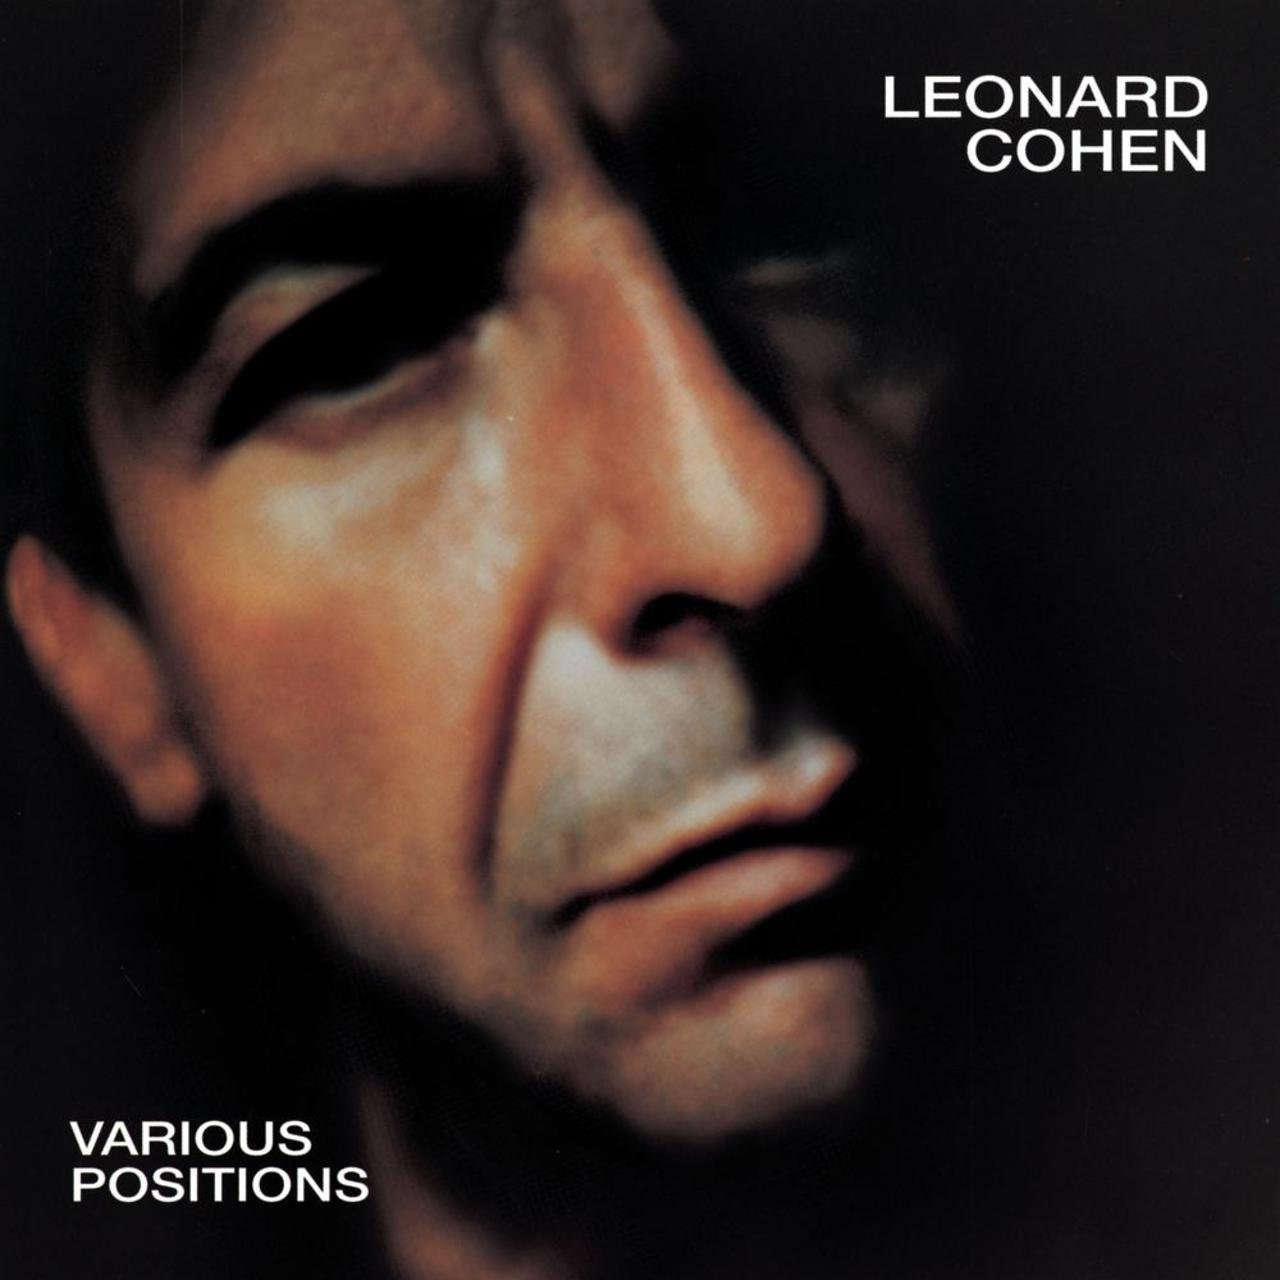 Image result for various positions leonard cohen